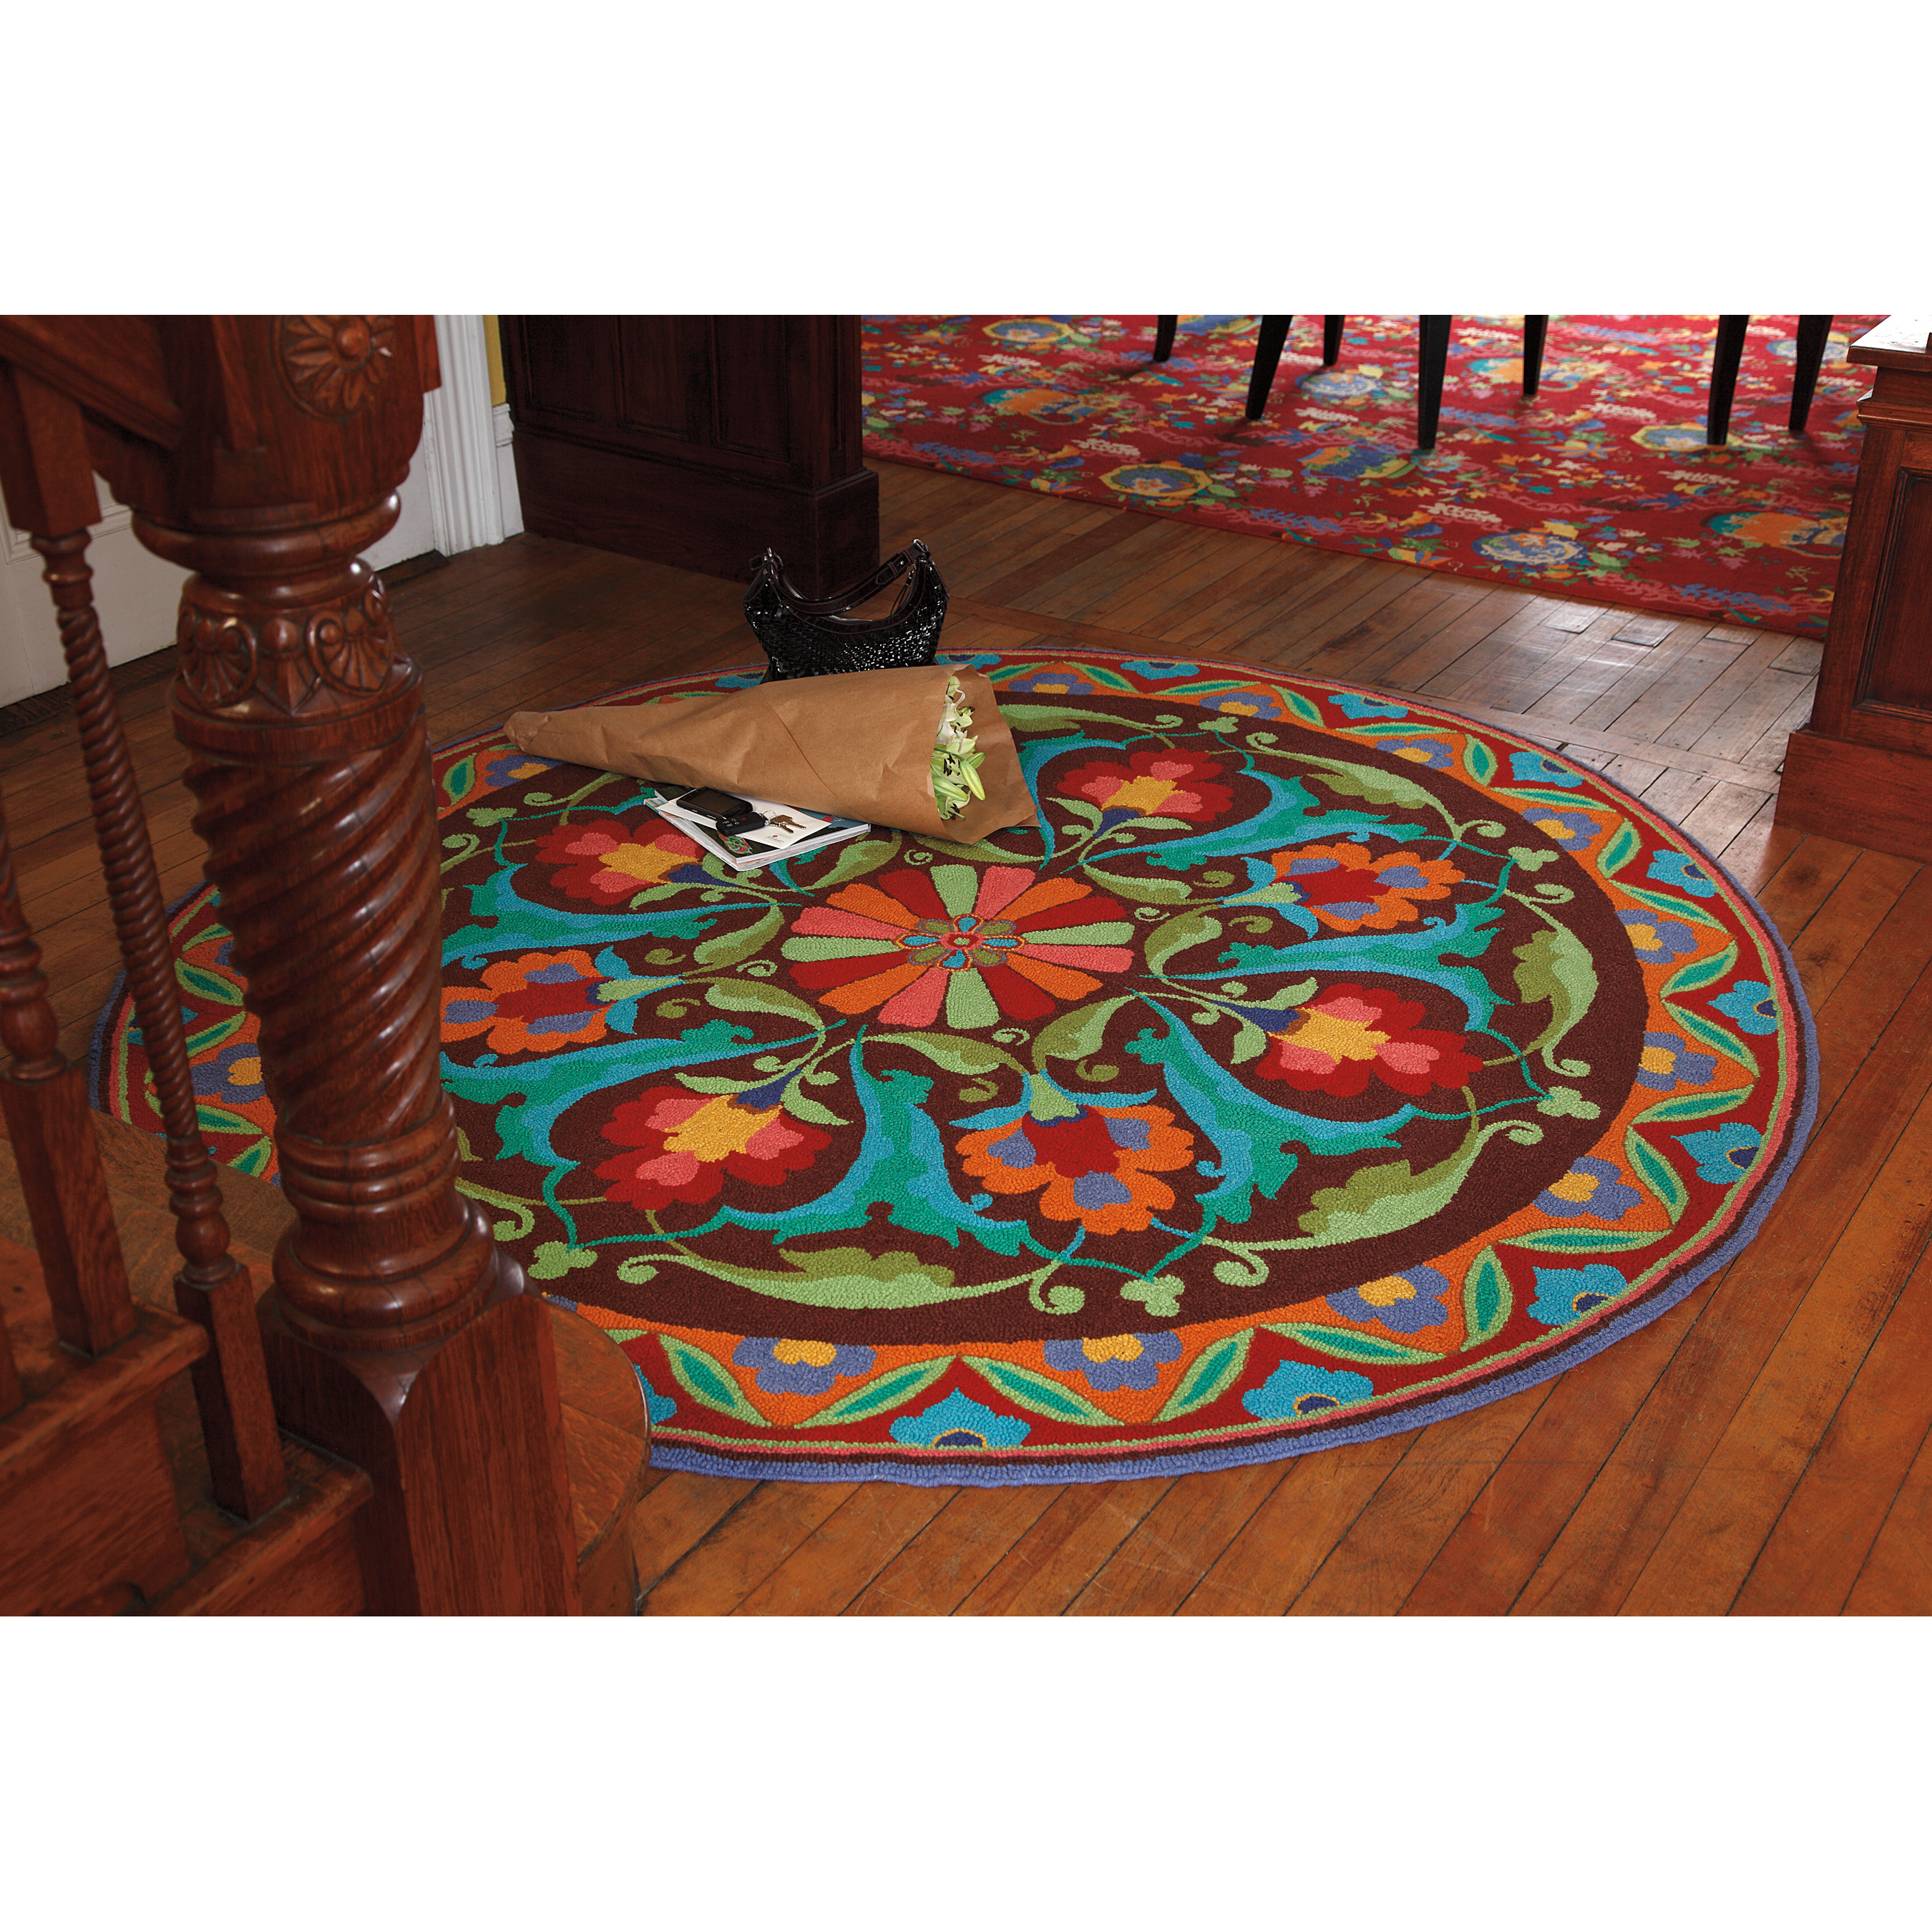 Light Porcelain Area rug Decorative Design company c rugs with harmony colors for indoor or outdoor ideas